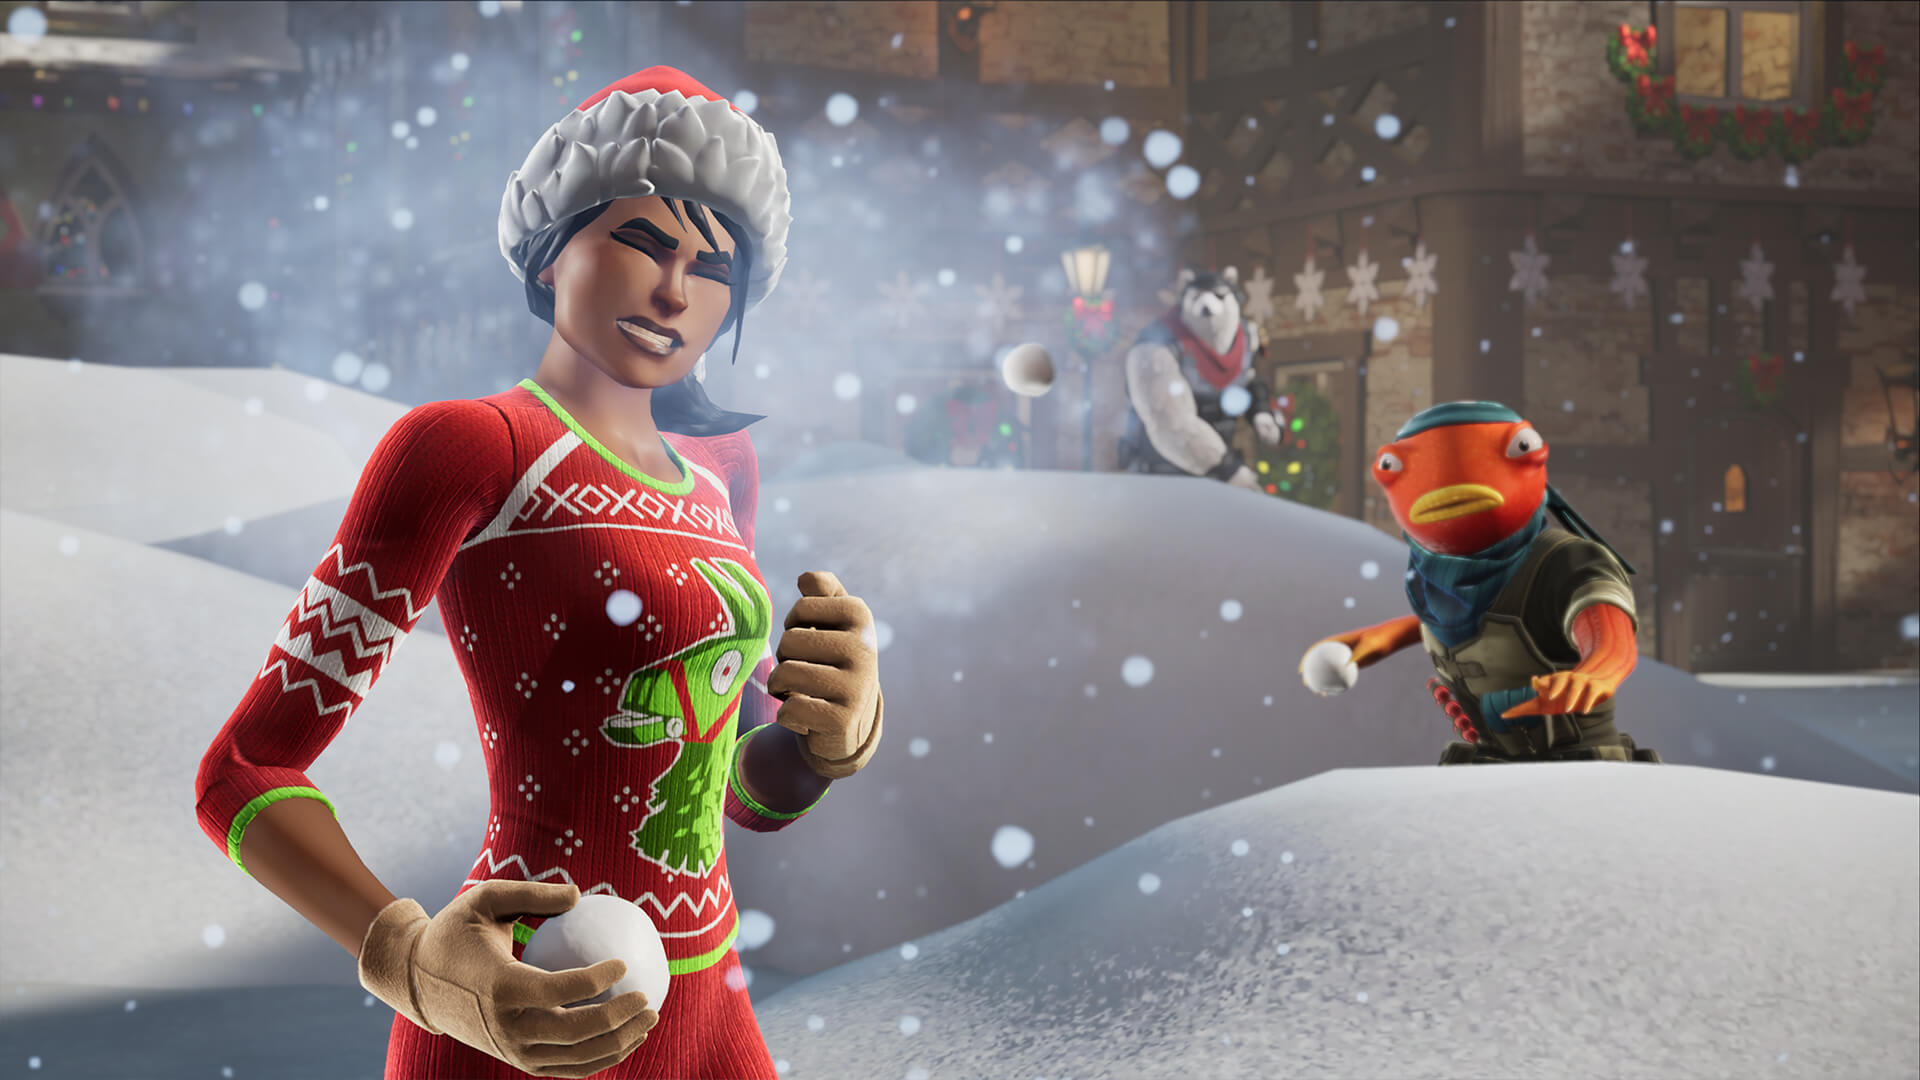 Frosty Fortnite Snowball Fight By Ritual